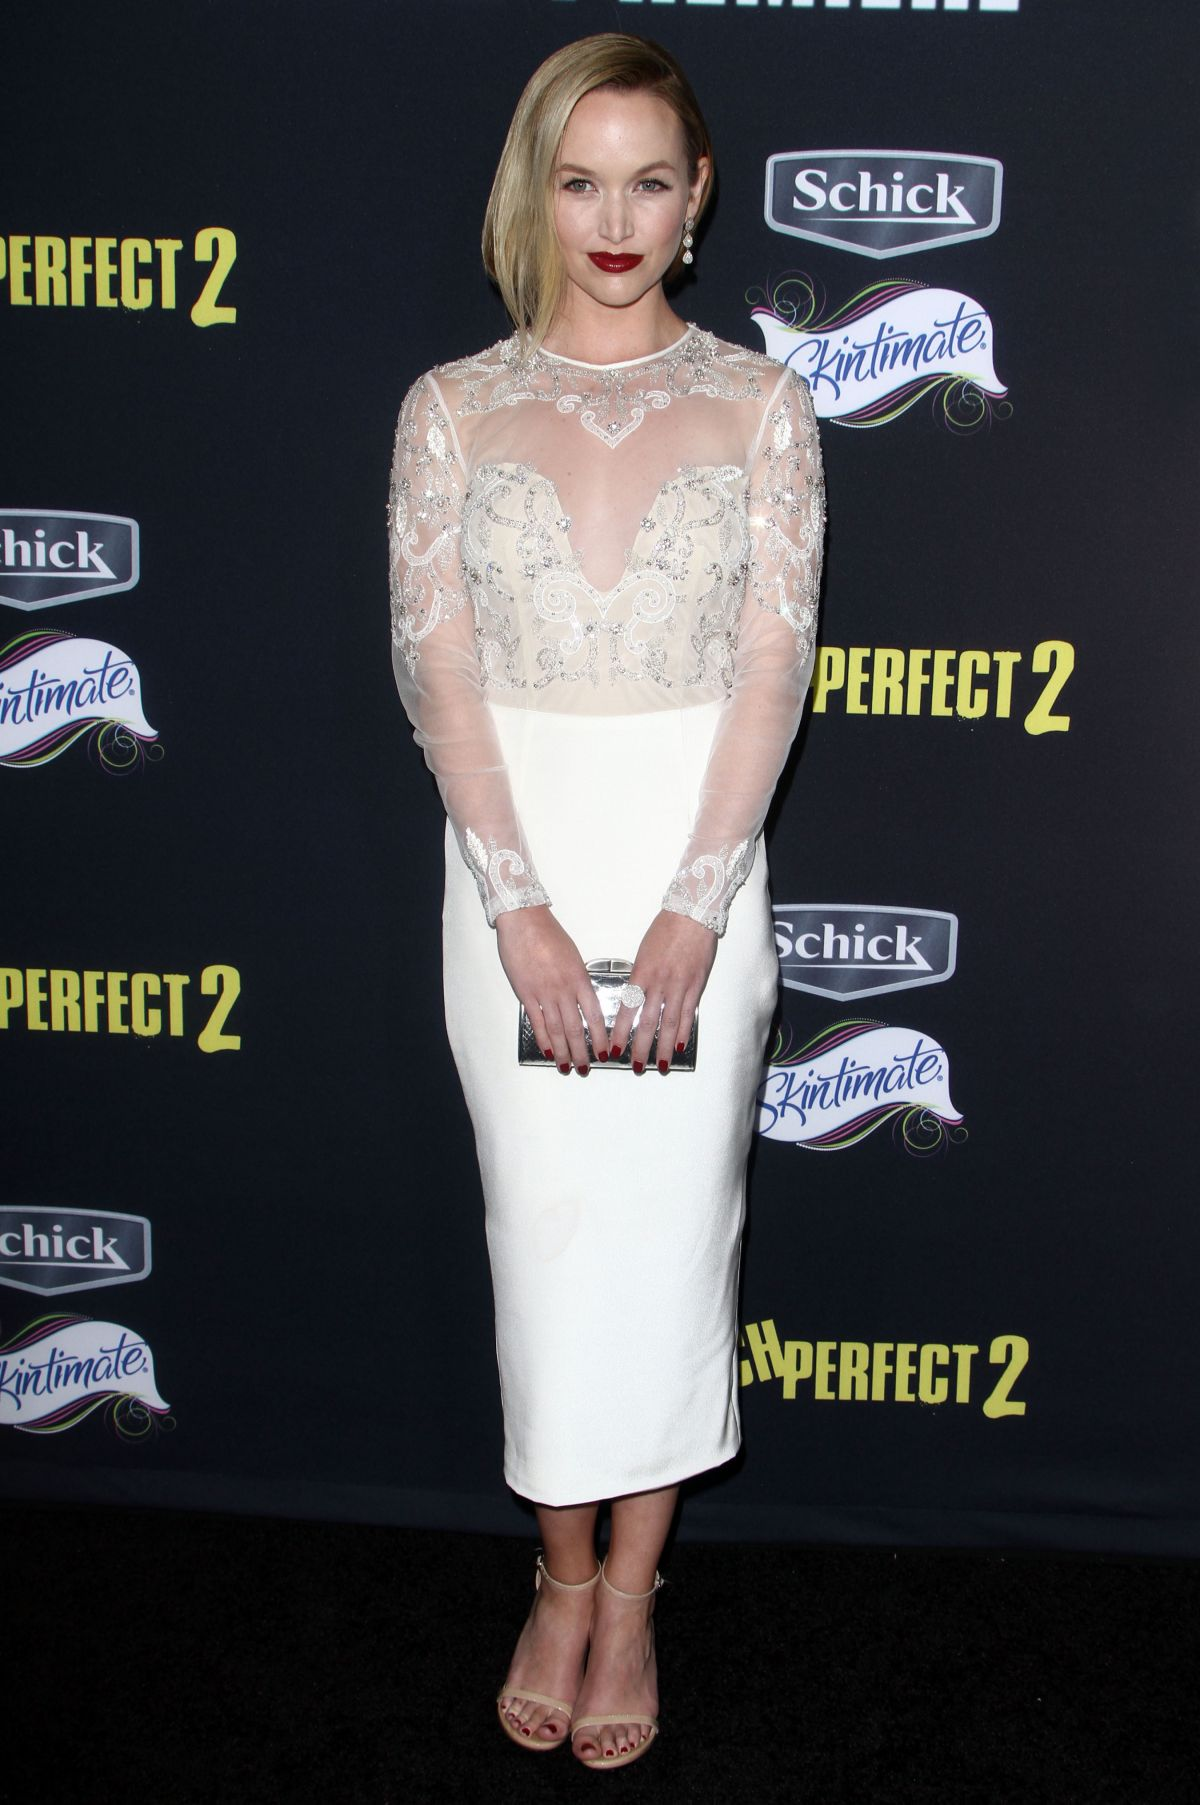 Kelley Jakle At Pitch Perfect 2 Premiere In Los Angeles